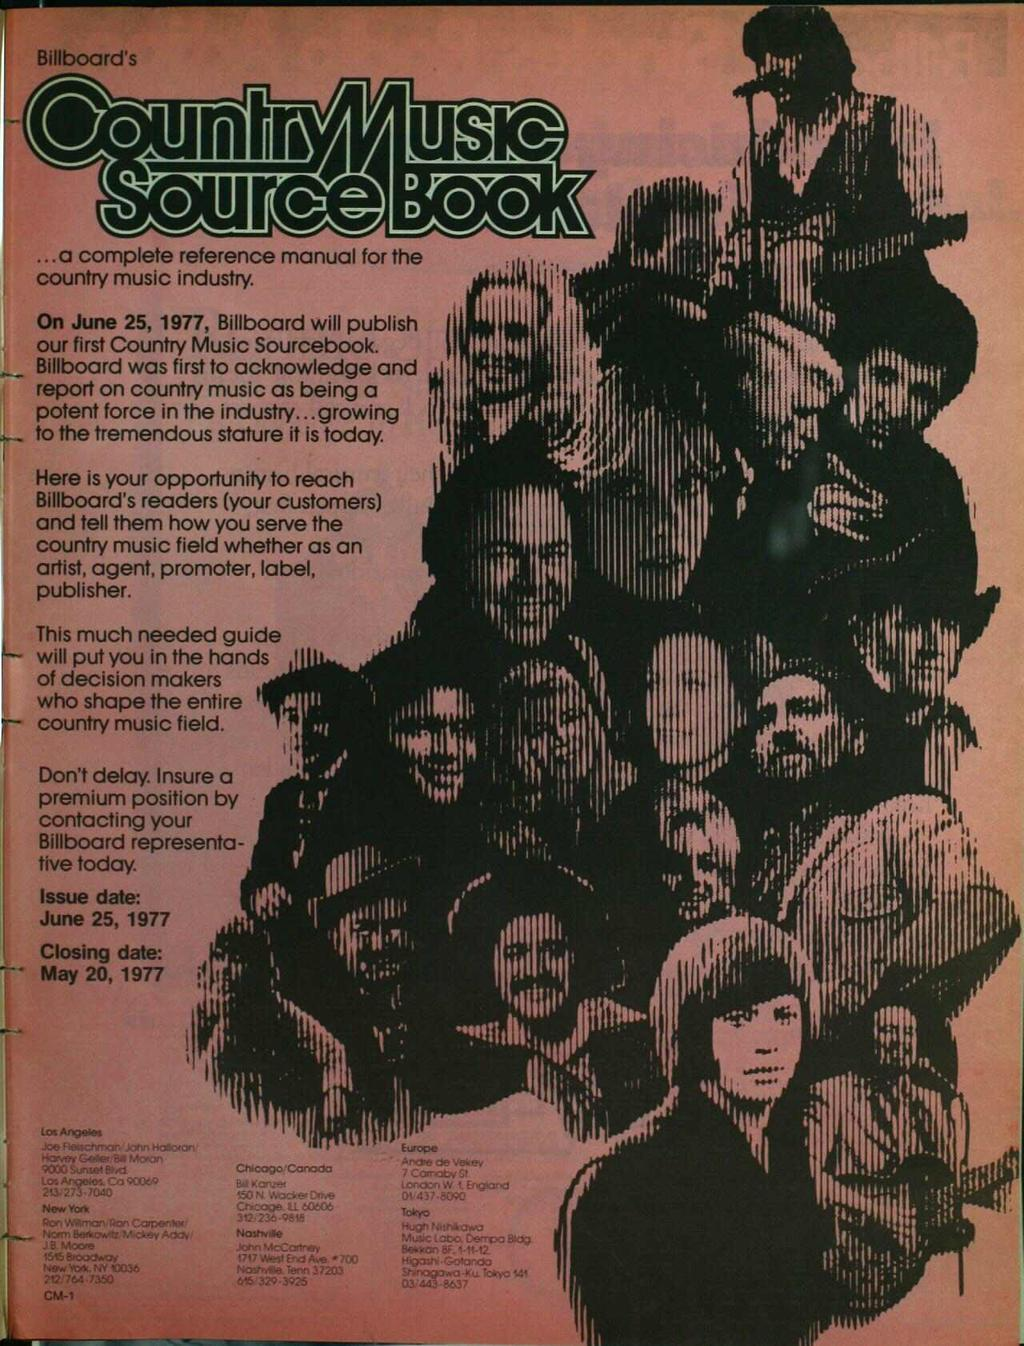 Billboard's...a complete reference manual for the country music industry. _ On June, 977, Billboard will publish our first Country Music Sourcebook.